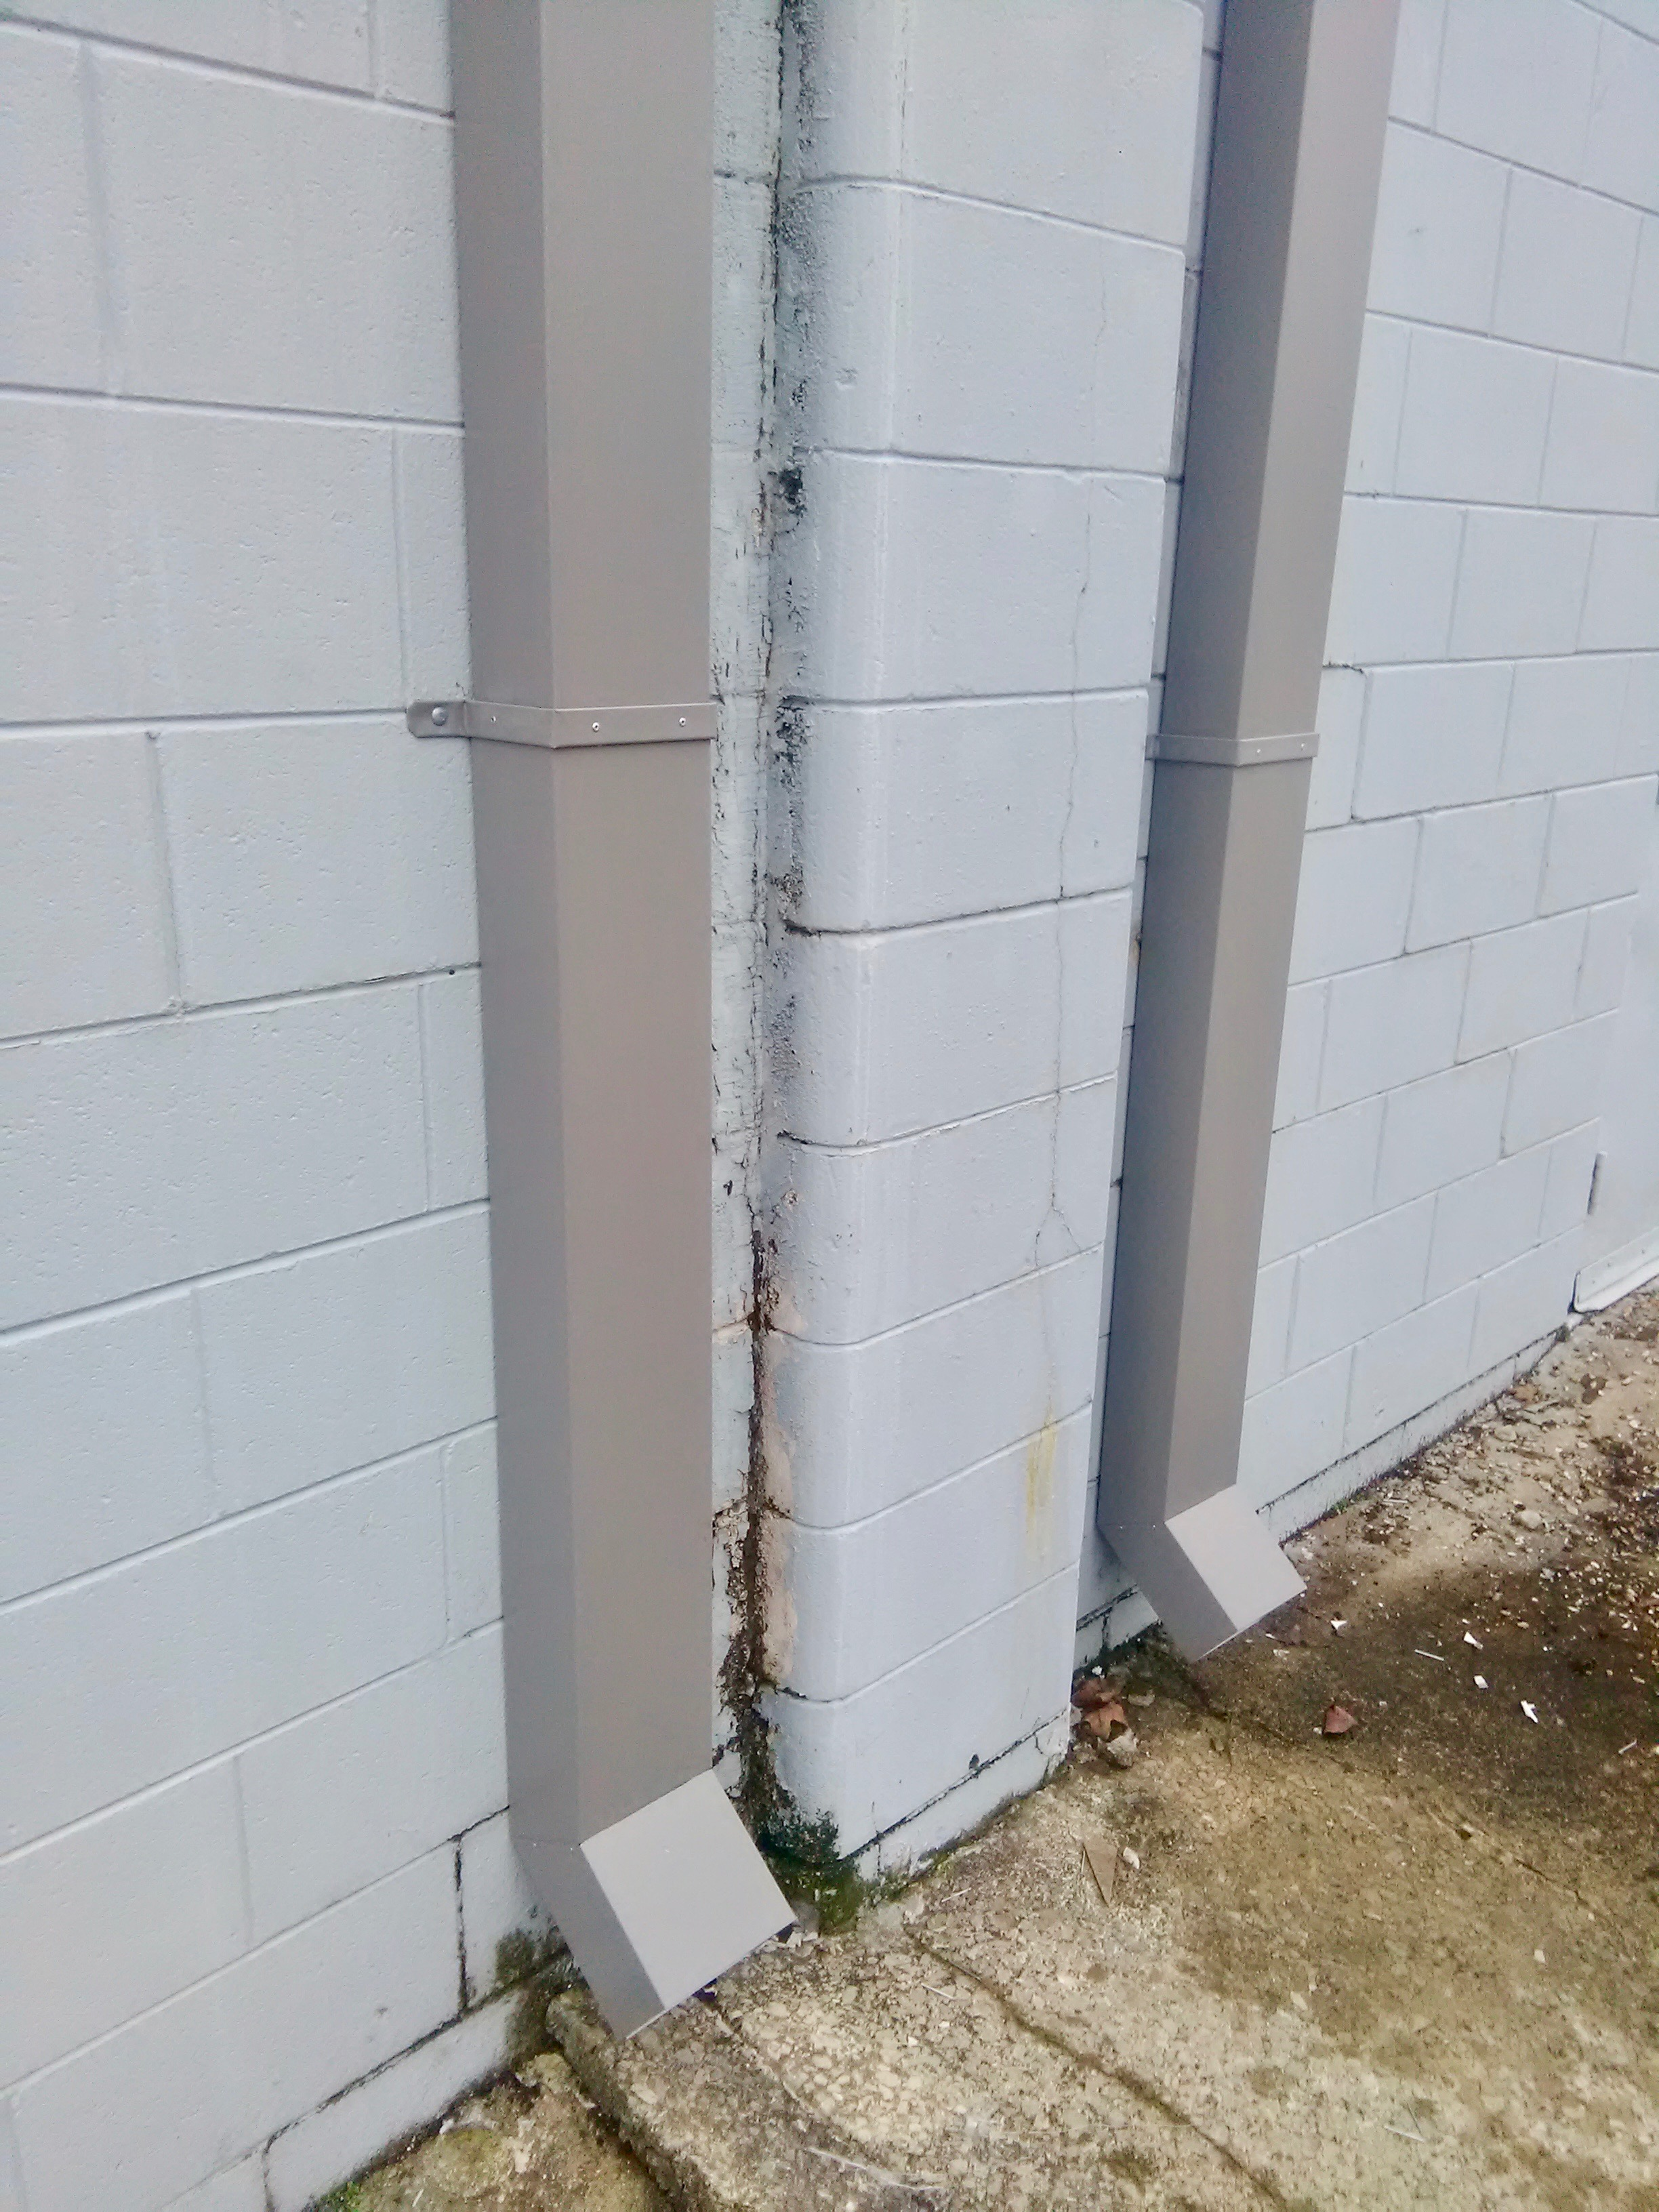 Commercial Guttering Downspouts Flat Roof-North Vernon.jpg